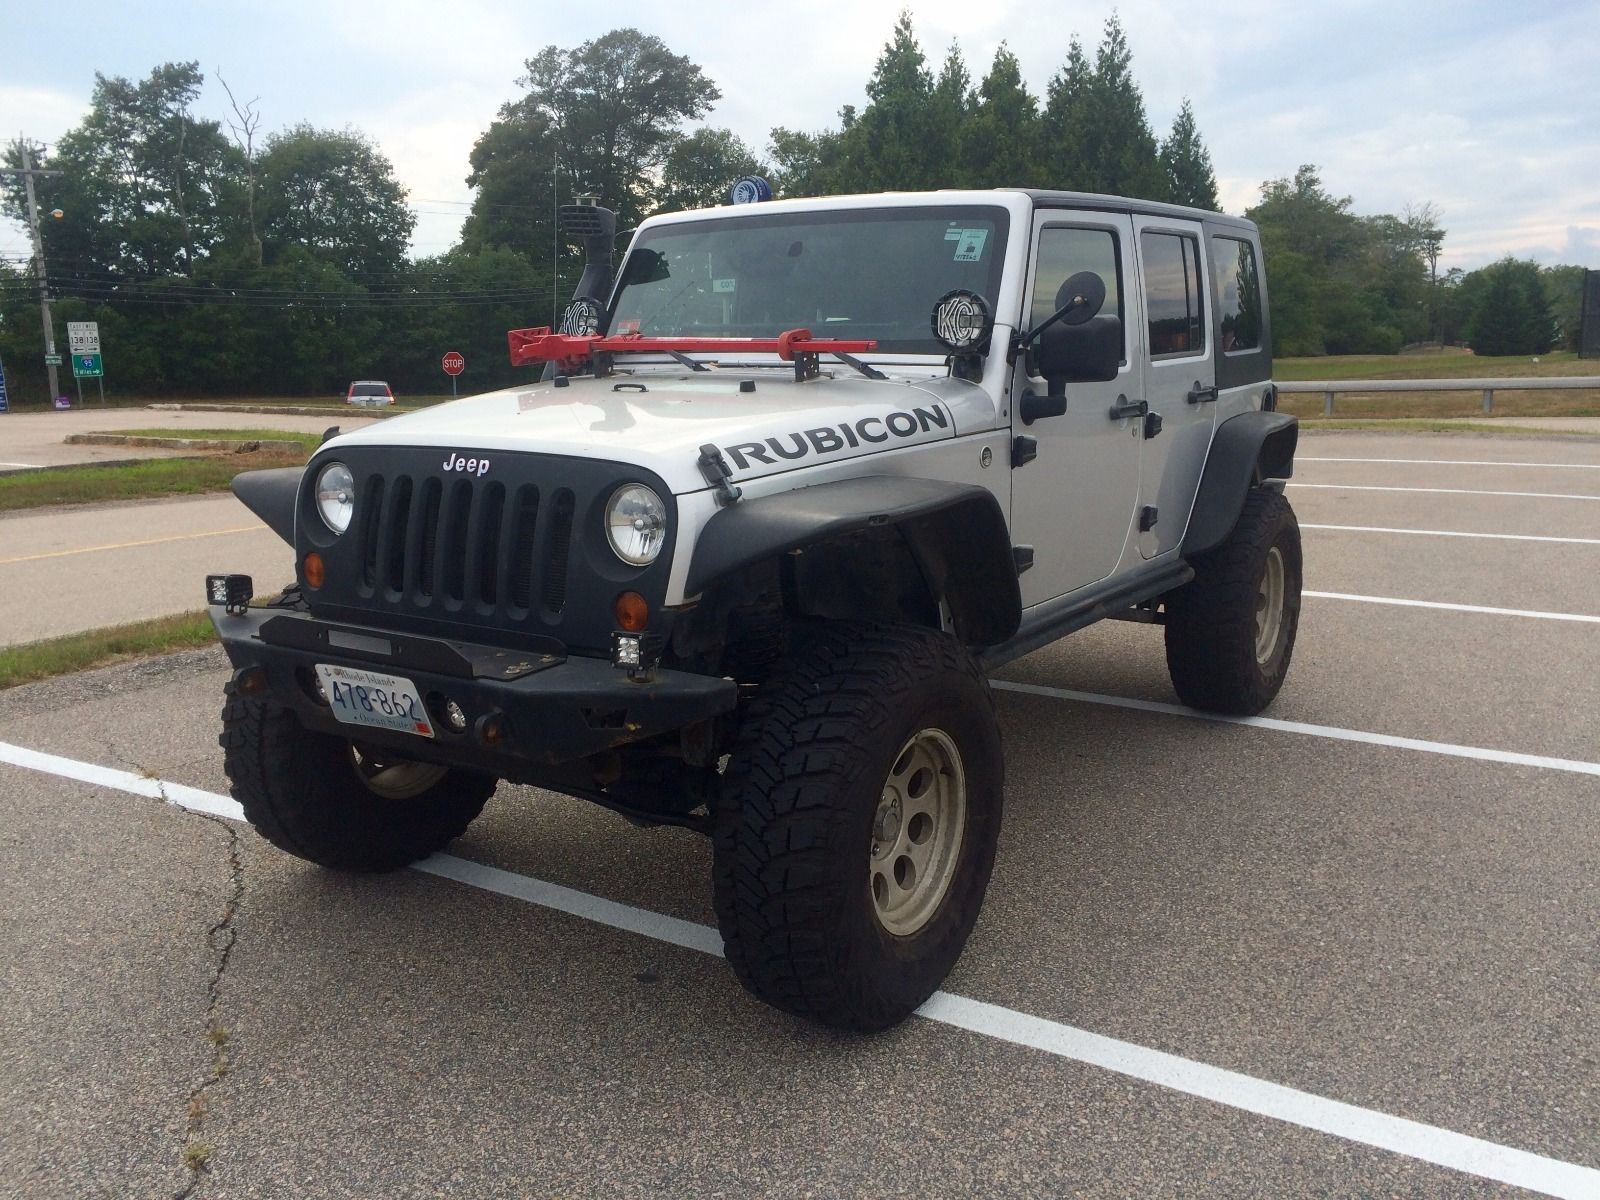 Aev Jeep For Sale >> 2008 Jeep Wrangler Rubicon offroad for sale